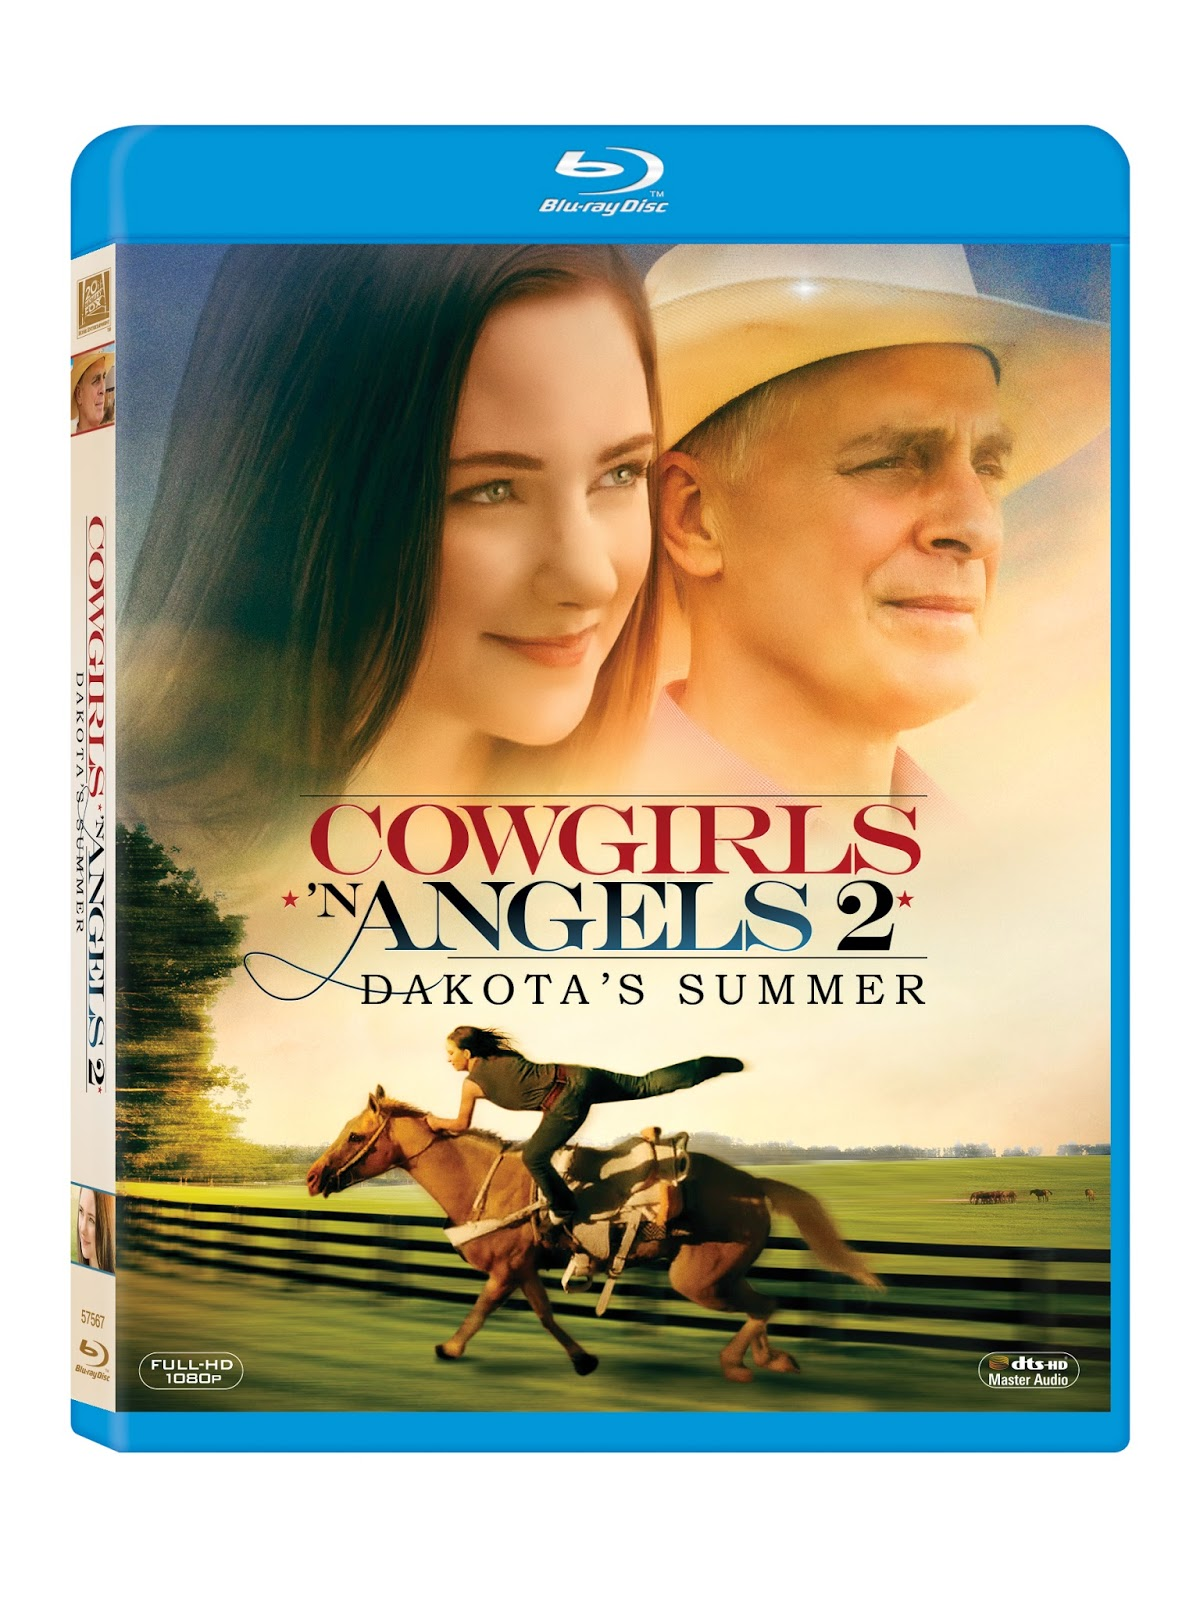 Blu-ray Review - Cowgirls 'N Angels 2: Dakota's Summer